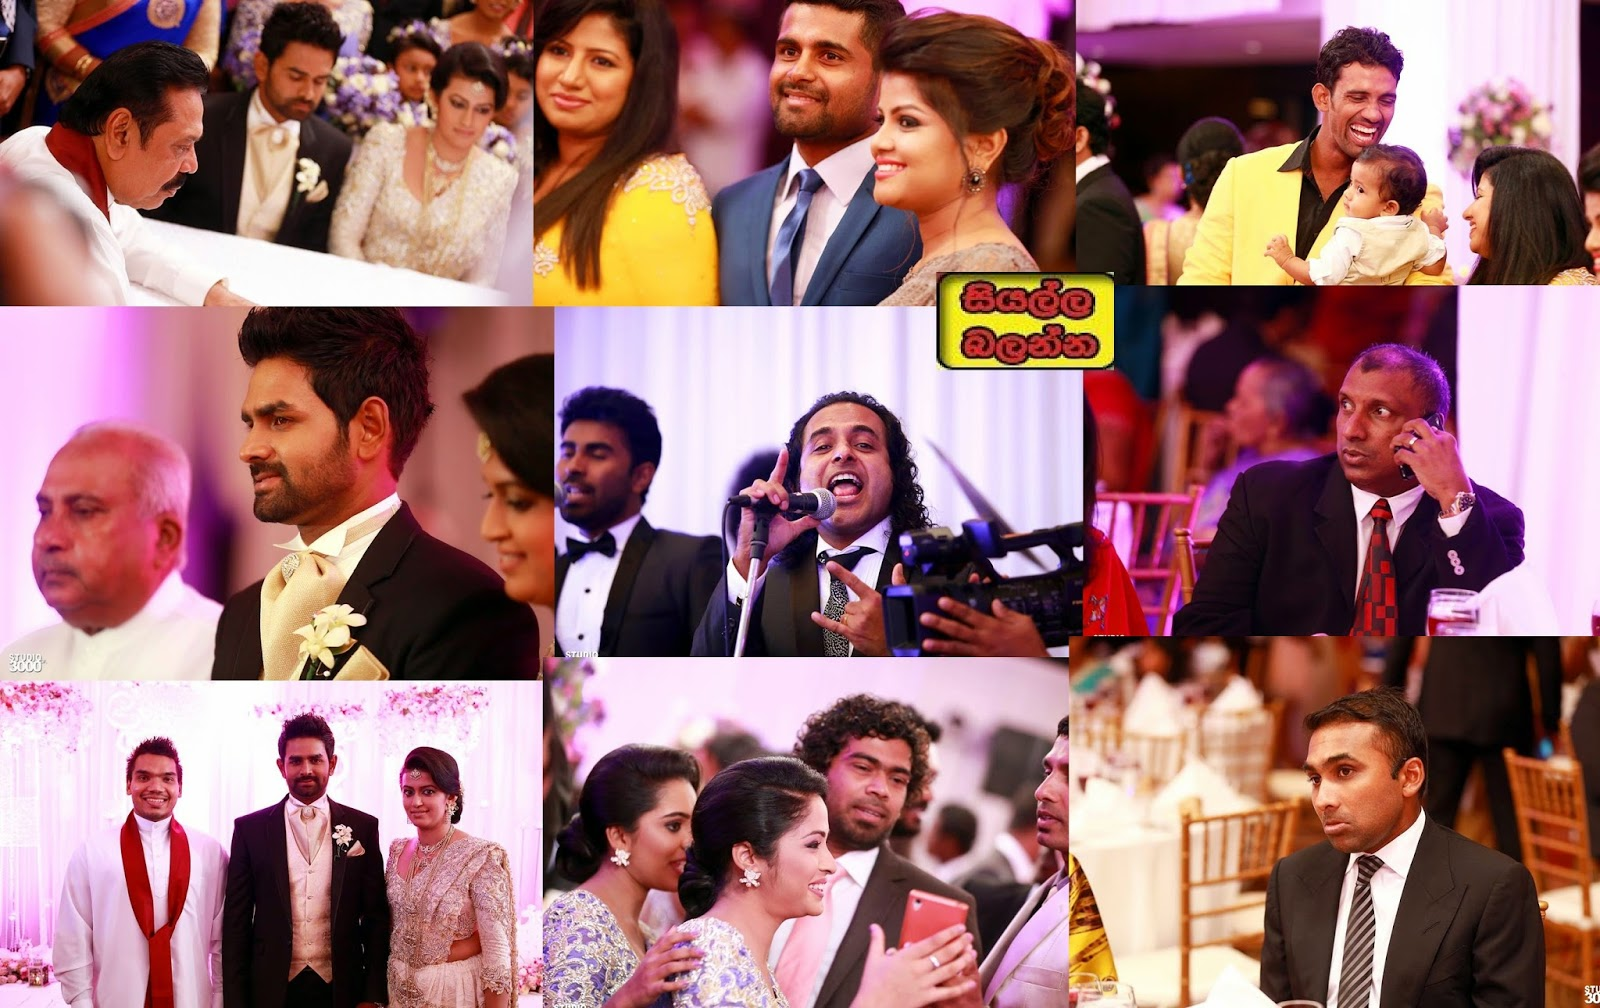 http://picture.gossiplankahotnews.com/2014/12/lahiru-thirimannes-wedding-moments.html